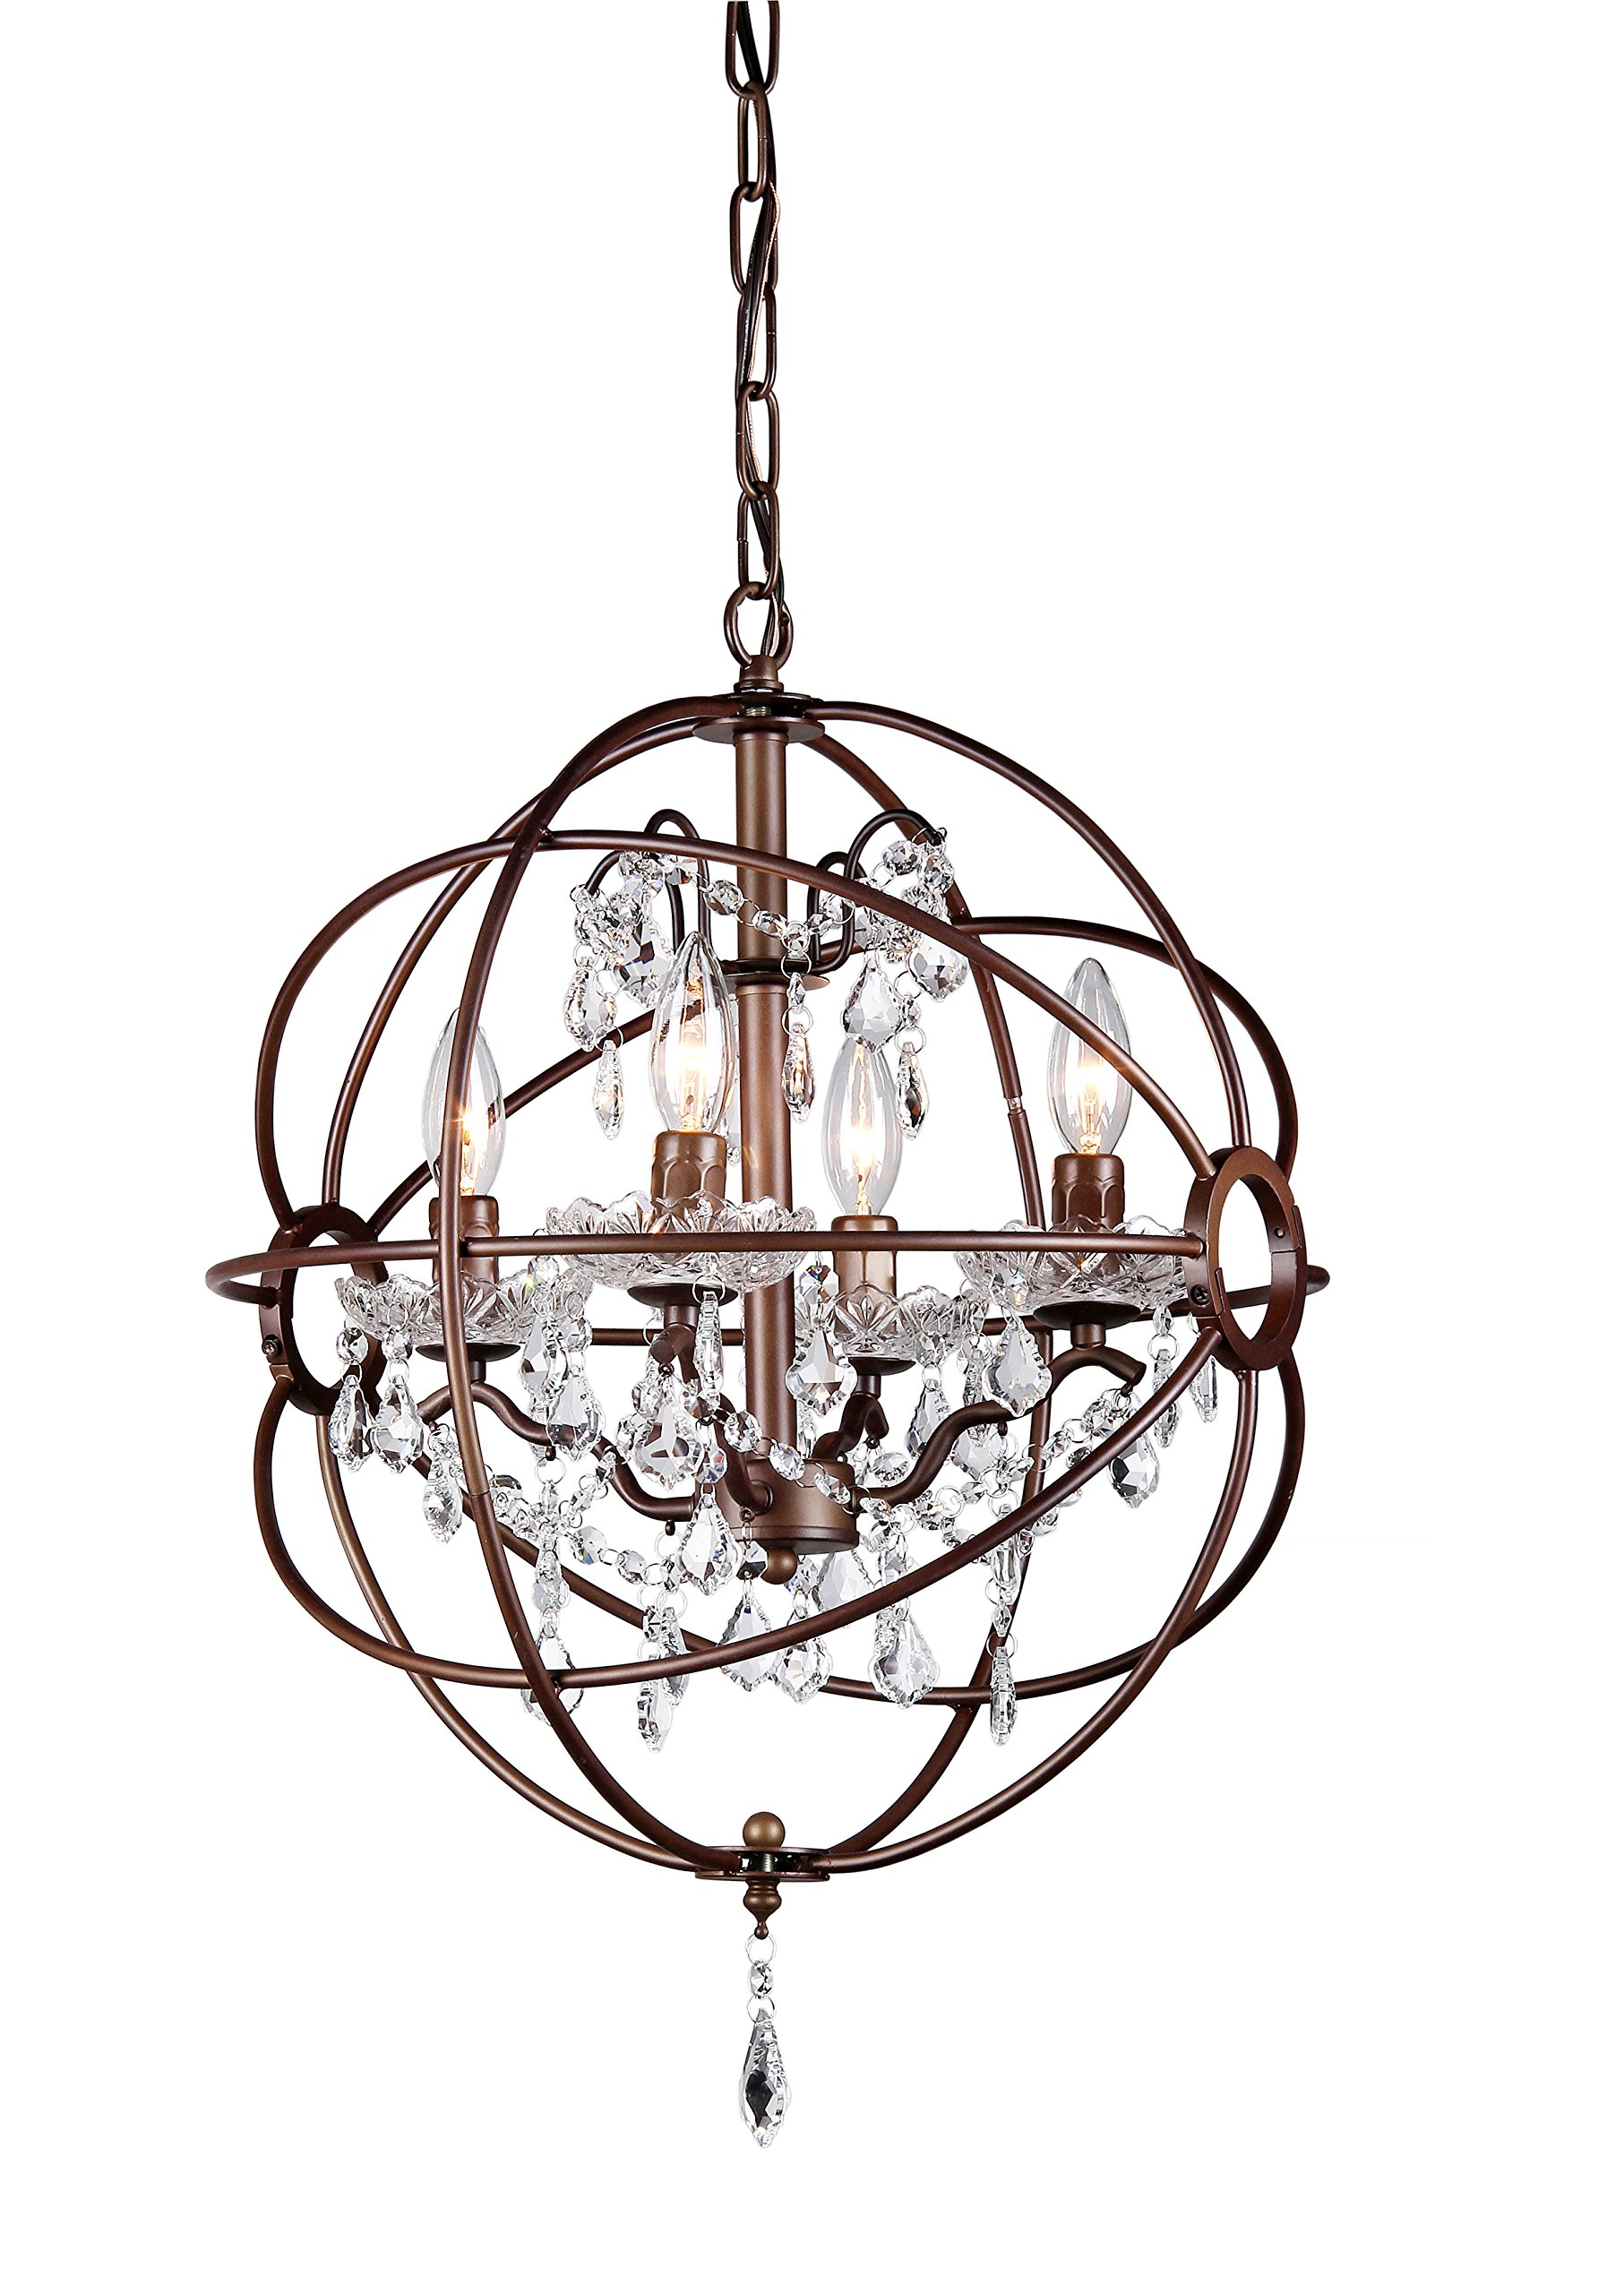 Whse of Tiffany RL8049-16AB Edwards Antique Bronze 16-Inch 5-Light Chandelier, White by Whse of Tiffany